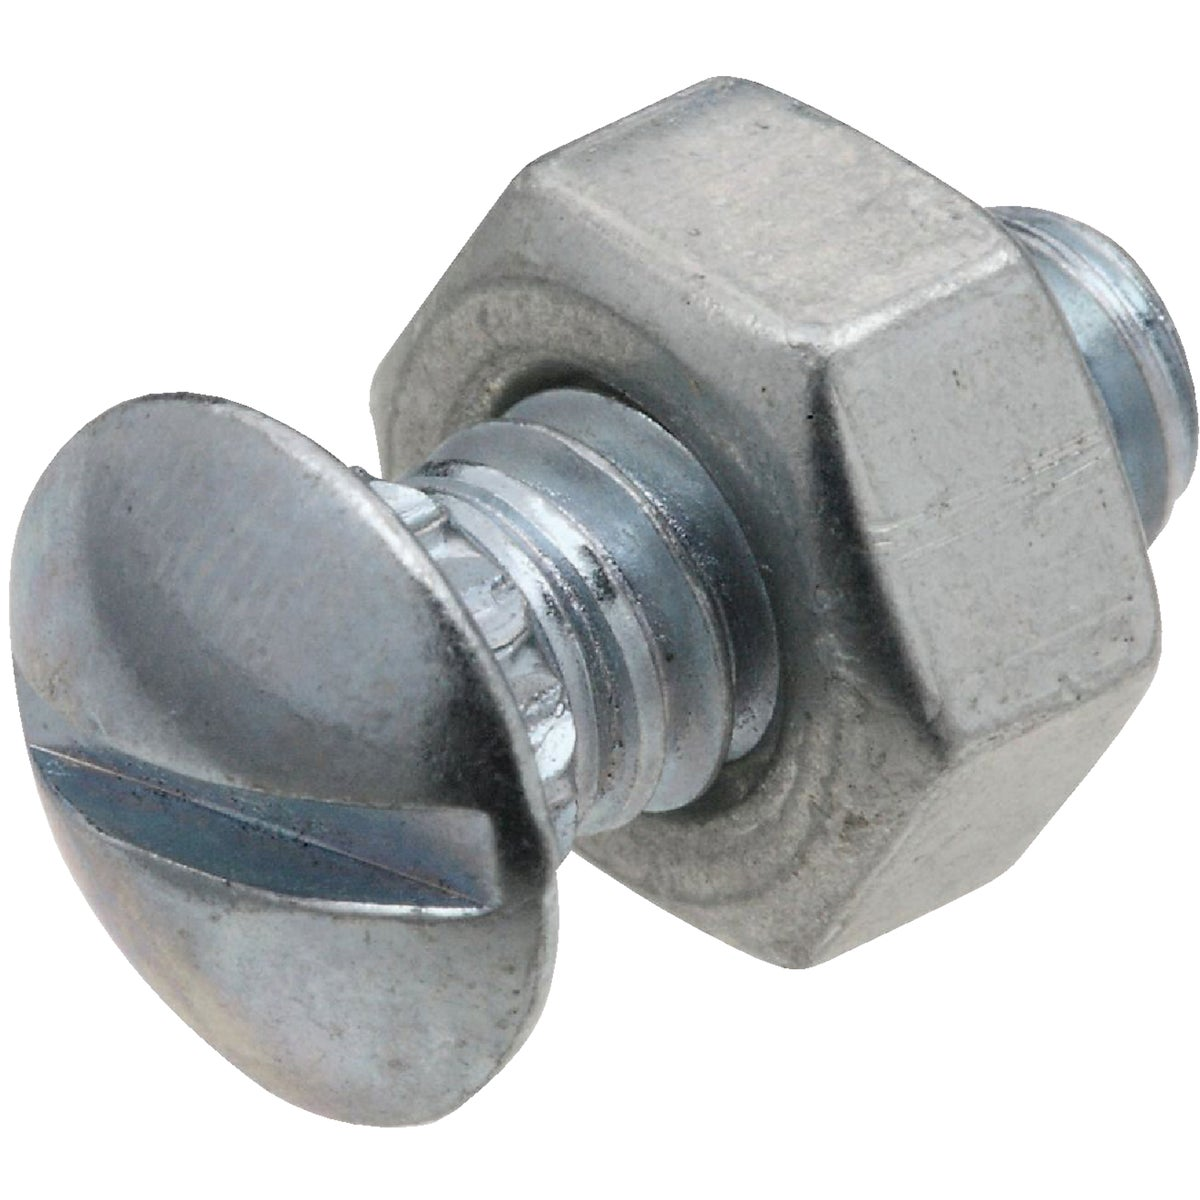 12PK RIBBED NUTS & BOLTS - N280875 by National Mfg Co